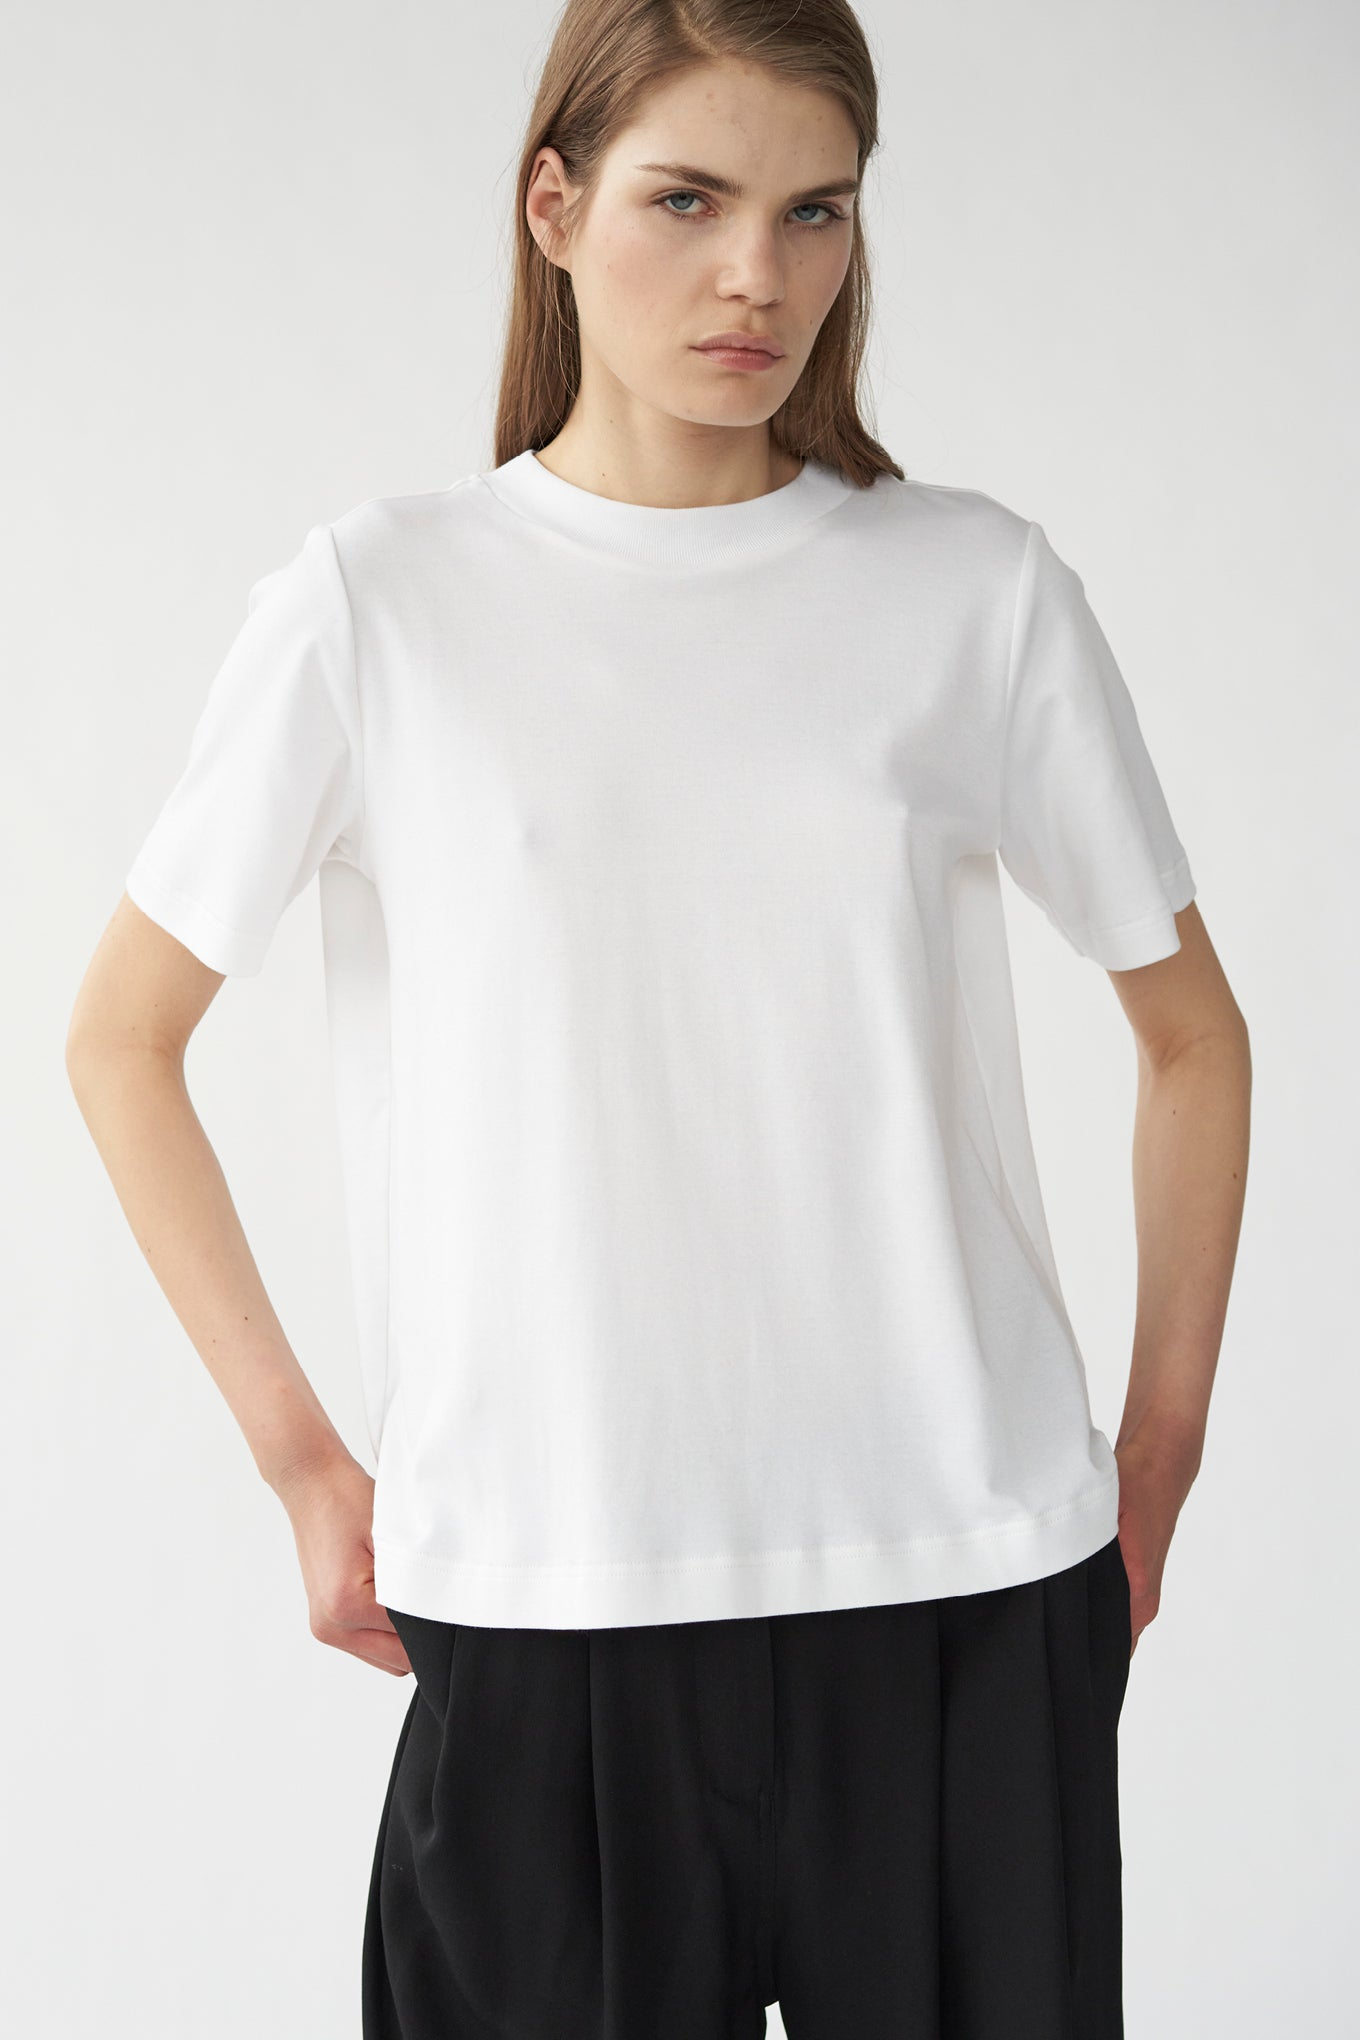 HAZE TEE - WHITE - SILK/COTTON JERSEY